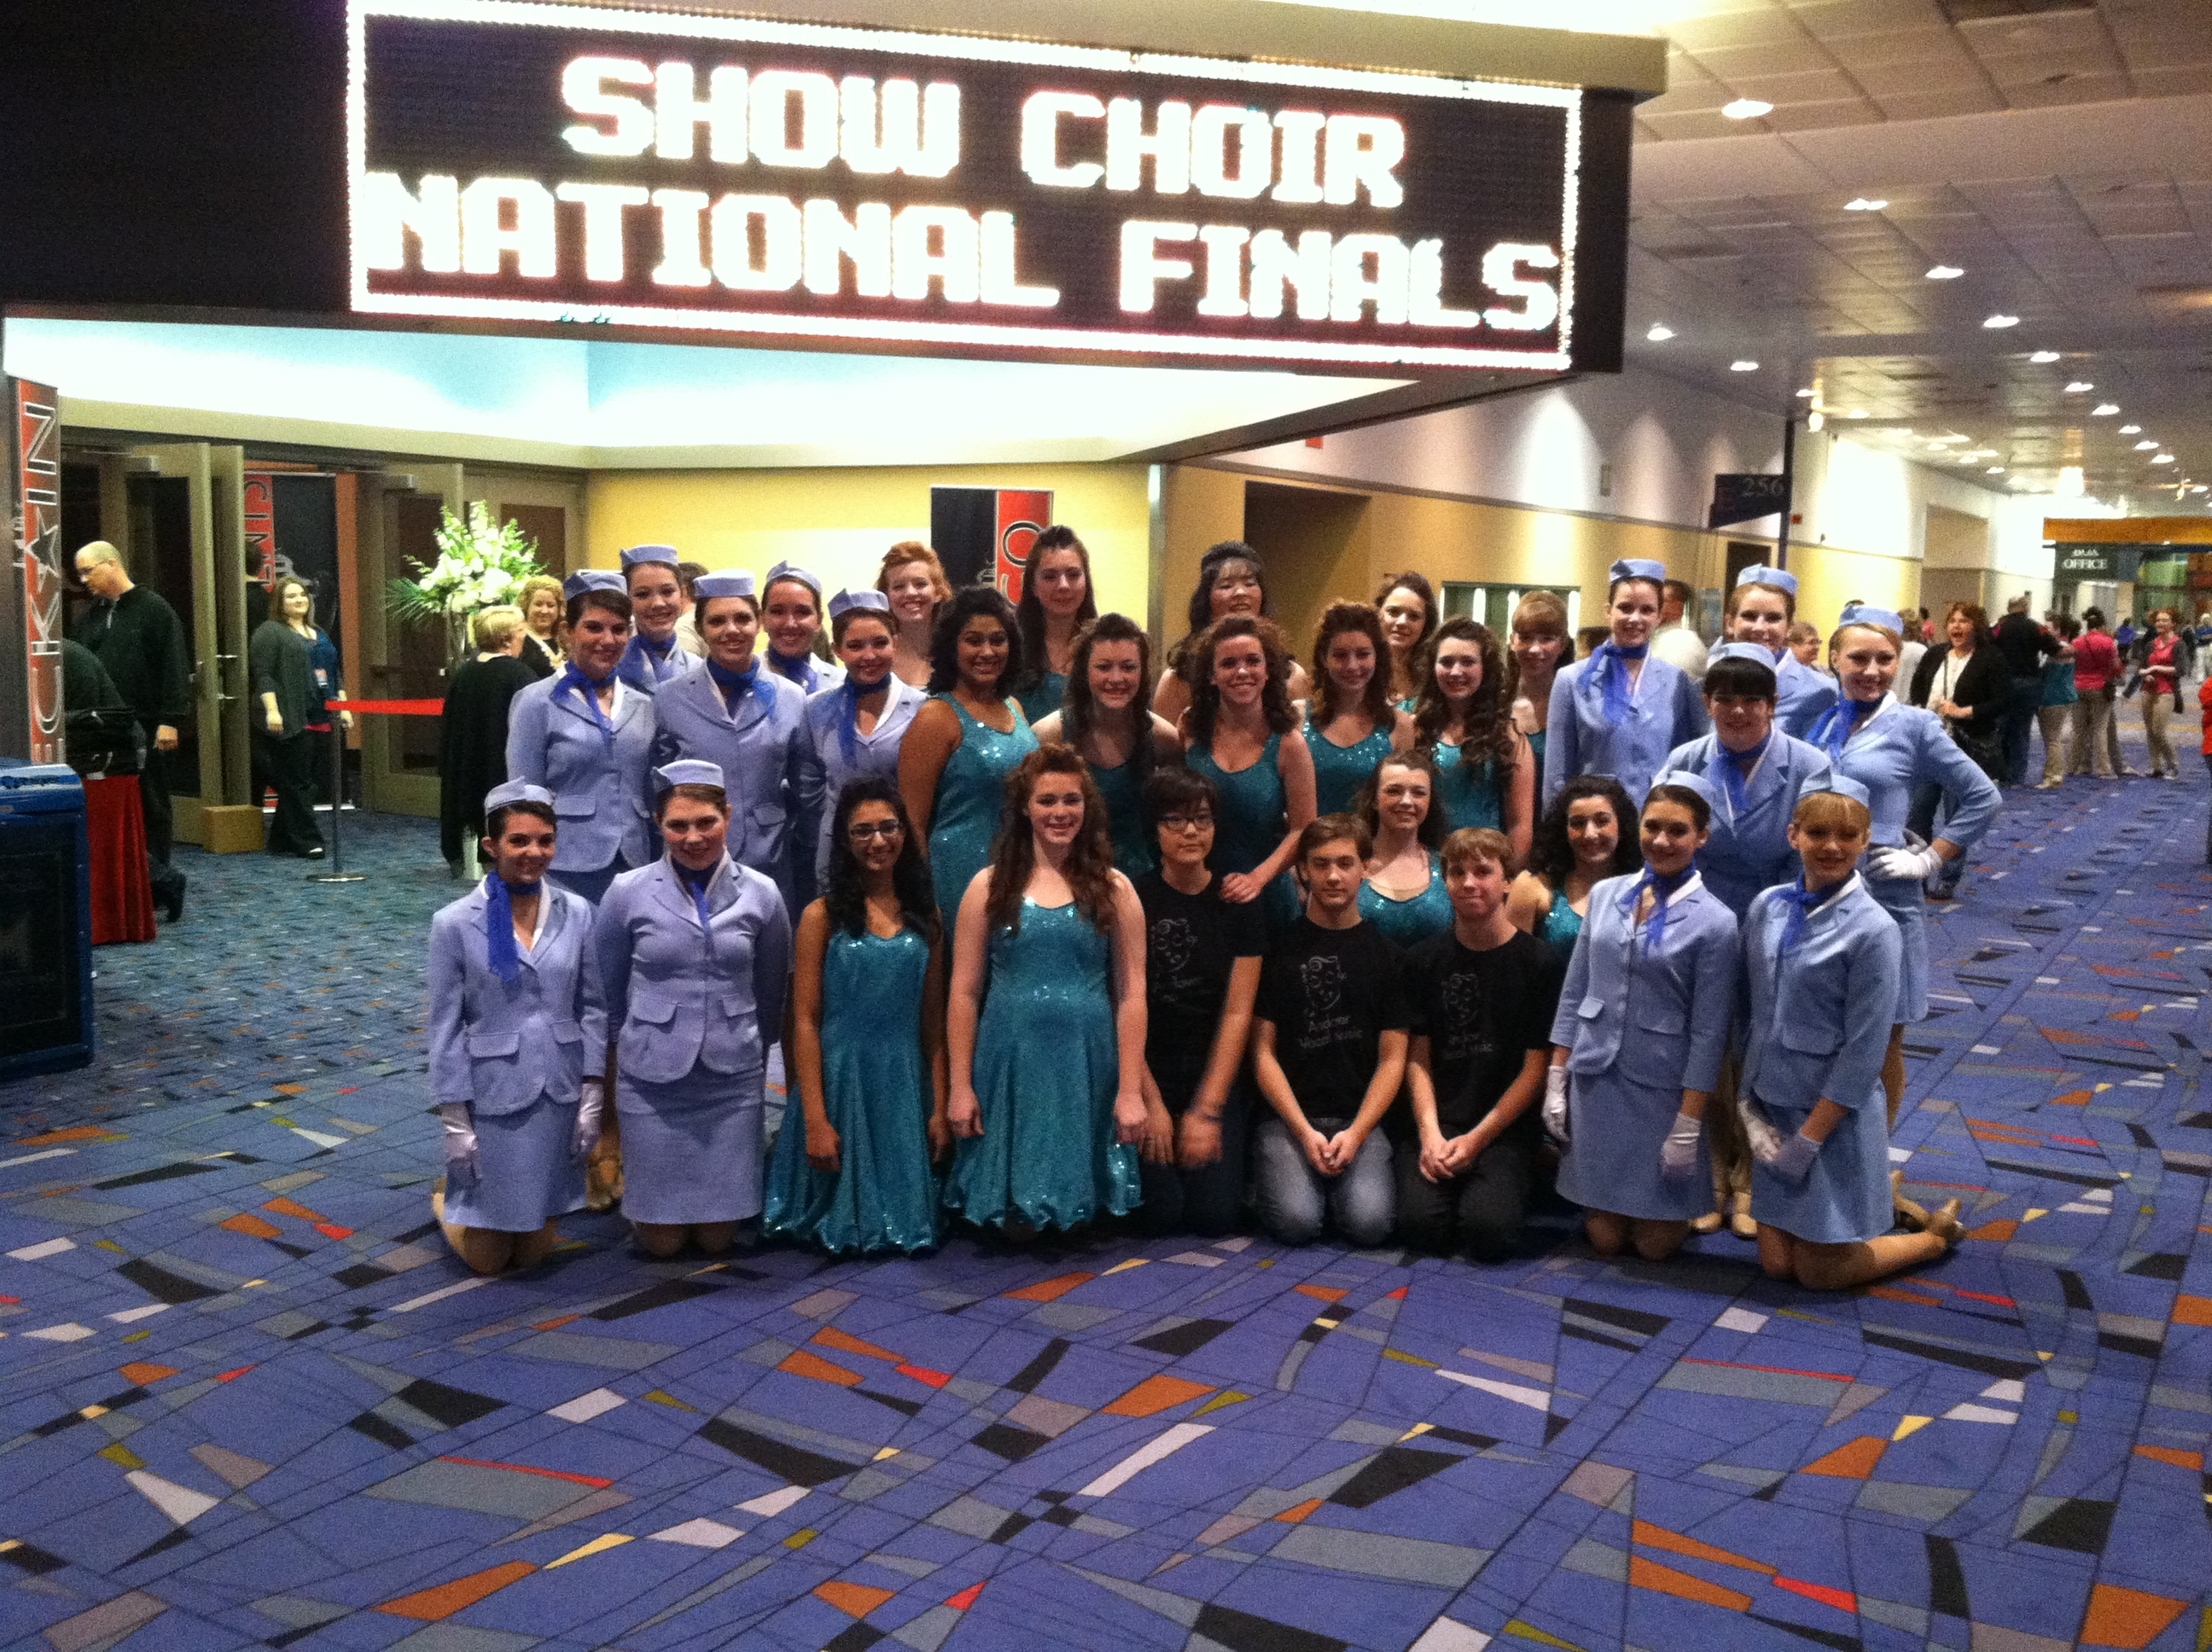 Nothin' But Treble Show Choir Nationals 2013